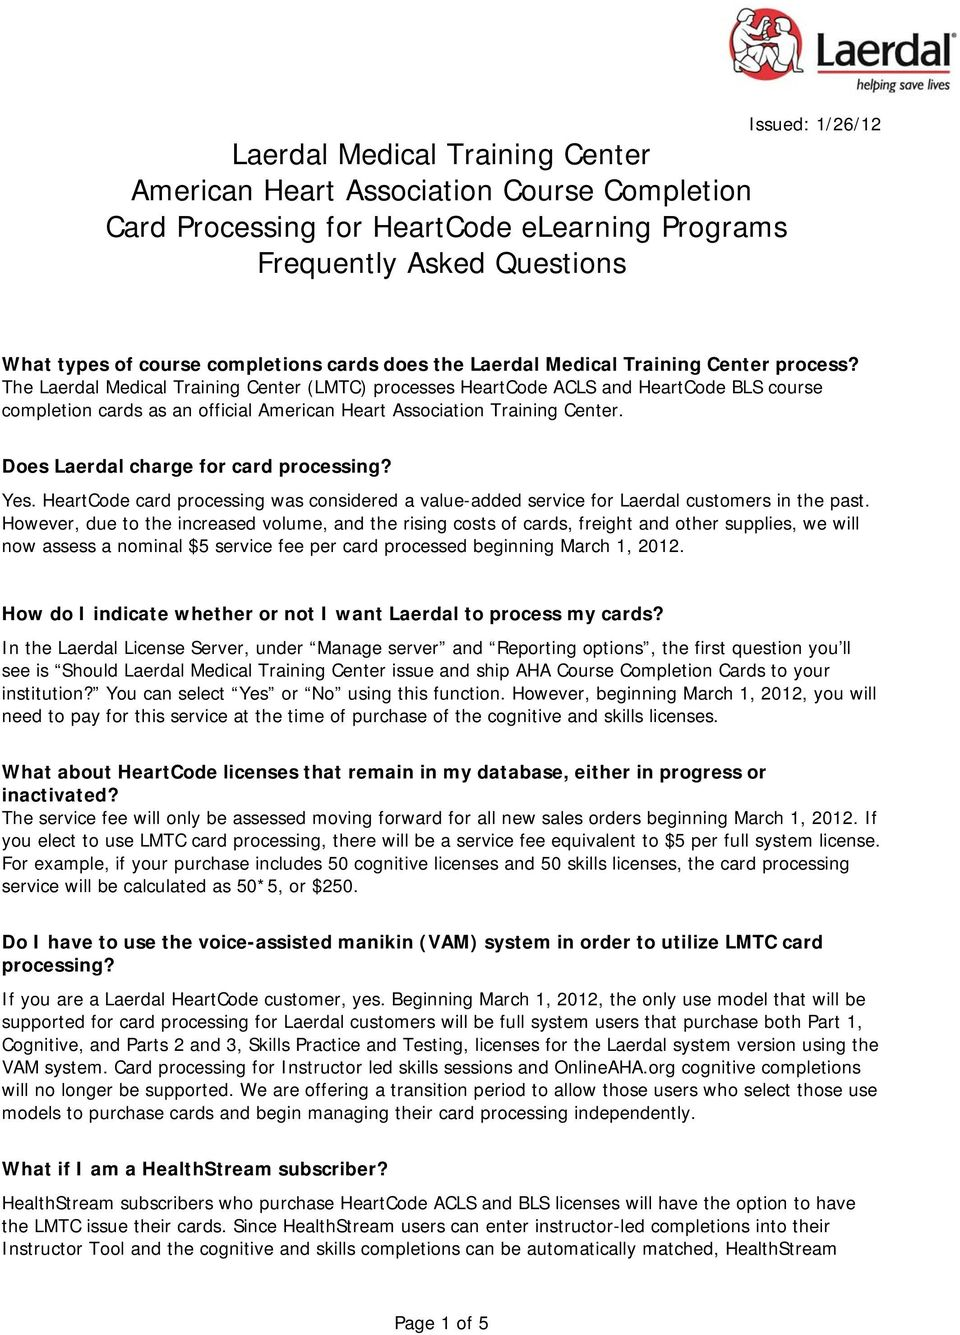 The Laerdal Medical Training Center (LMTC) processes HeartCode ACLS and HeartCode BLS course completion cards as an official American Heart Association Training Center.